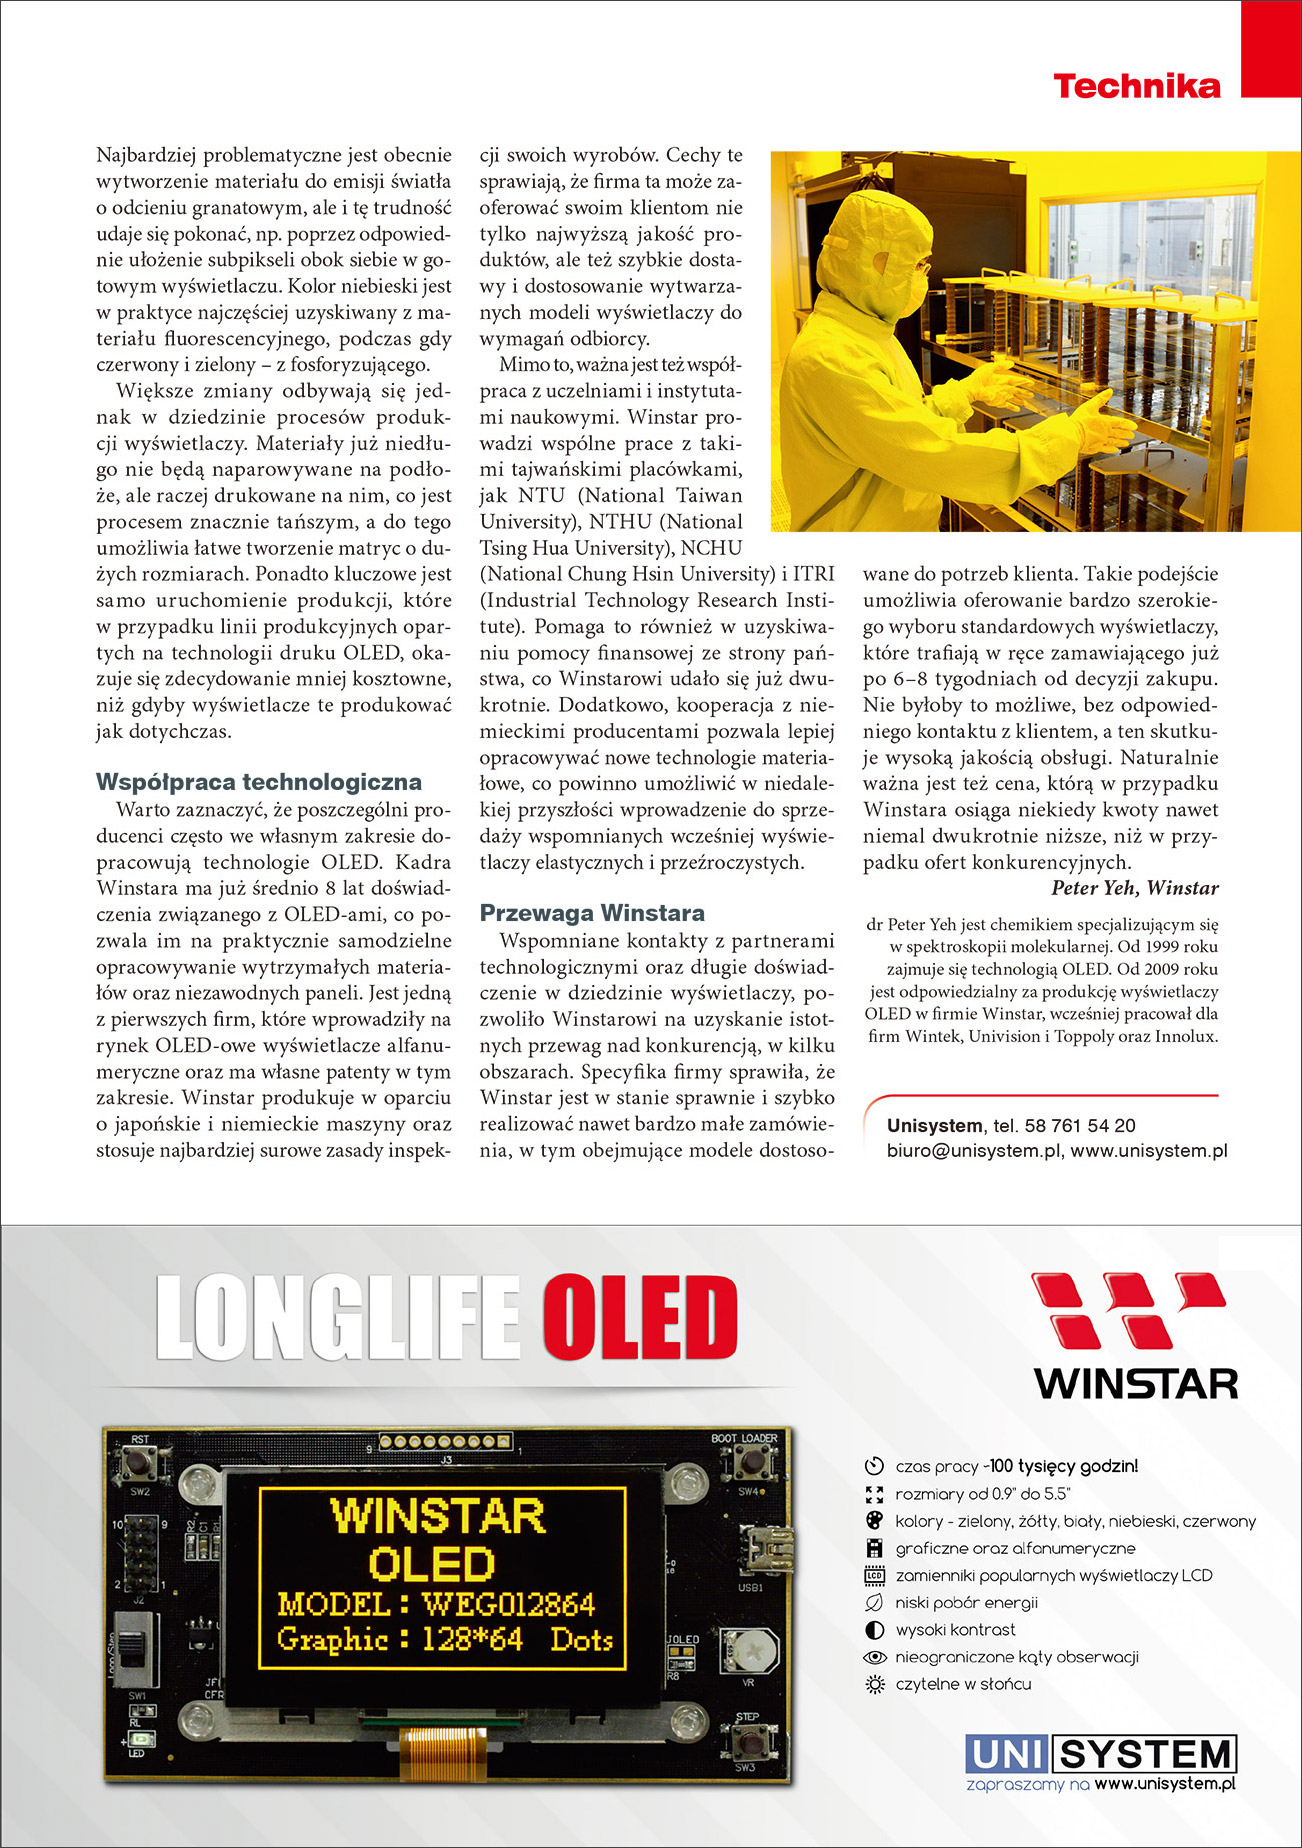 Elektronik Magazine - Publication Article (Winstar OLED) Page2